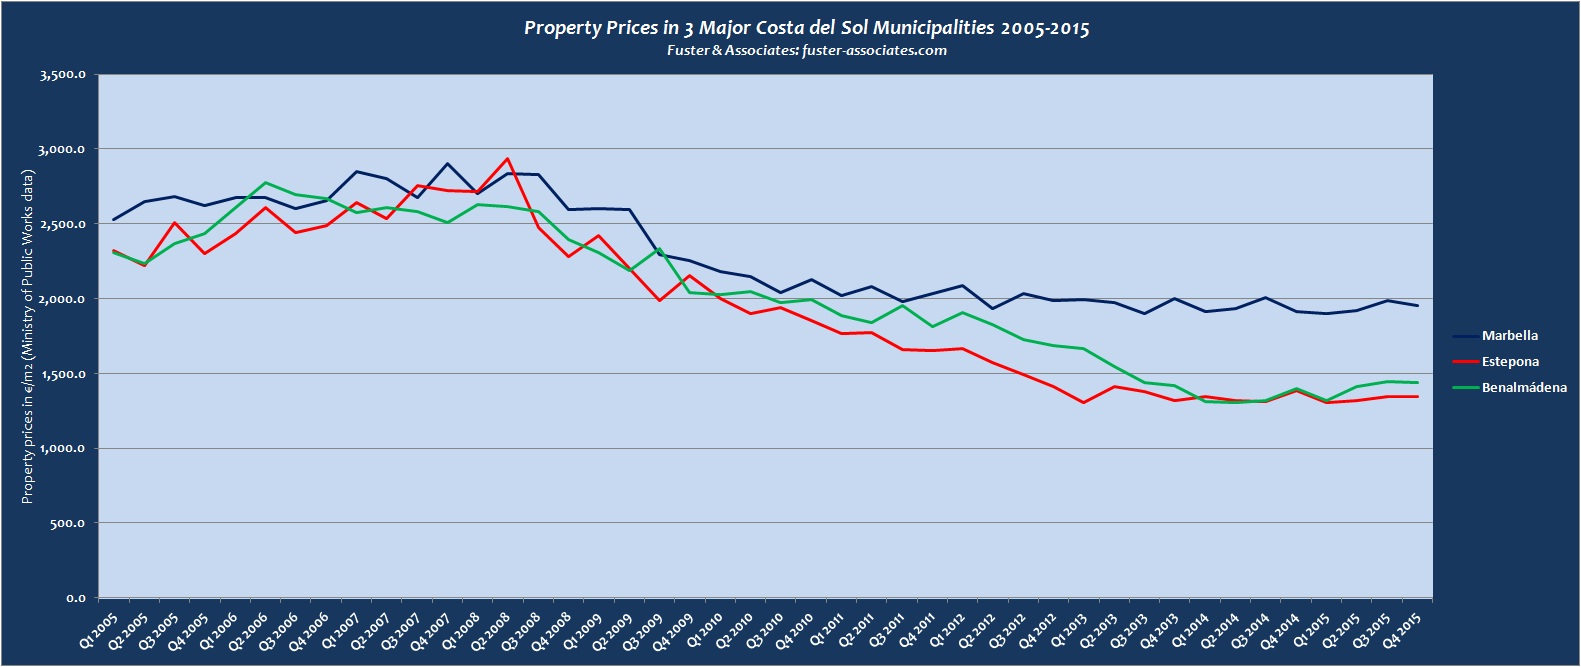 CDS prop prices 2005-2015